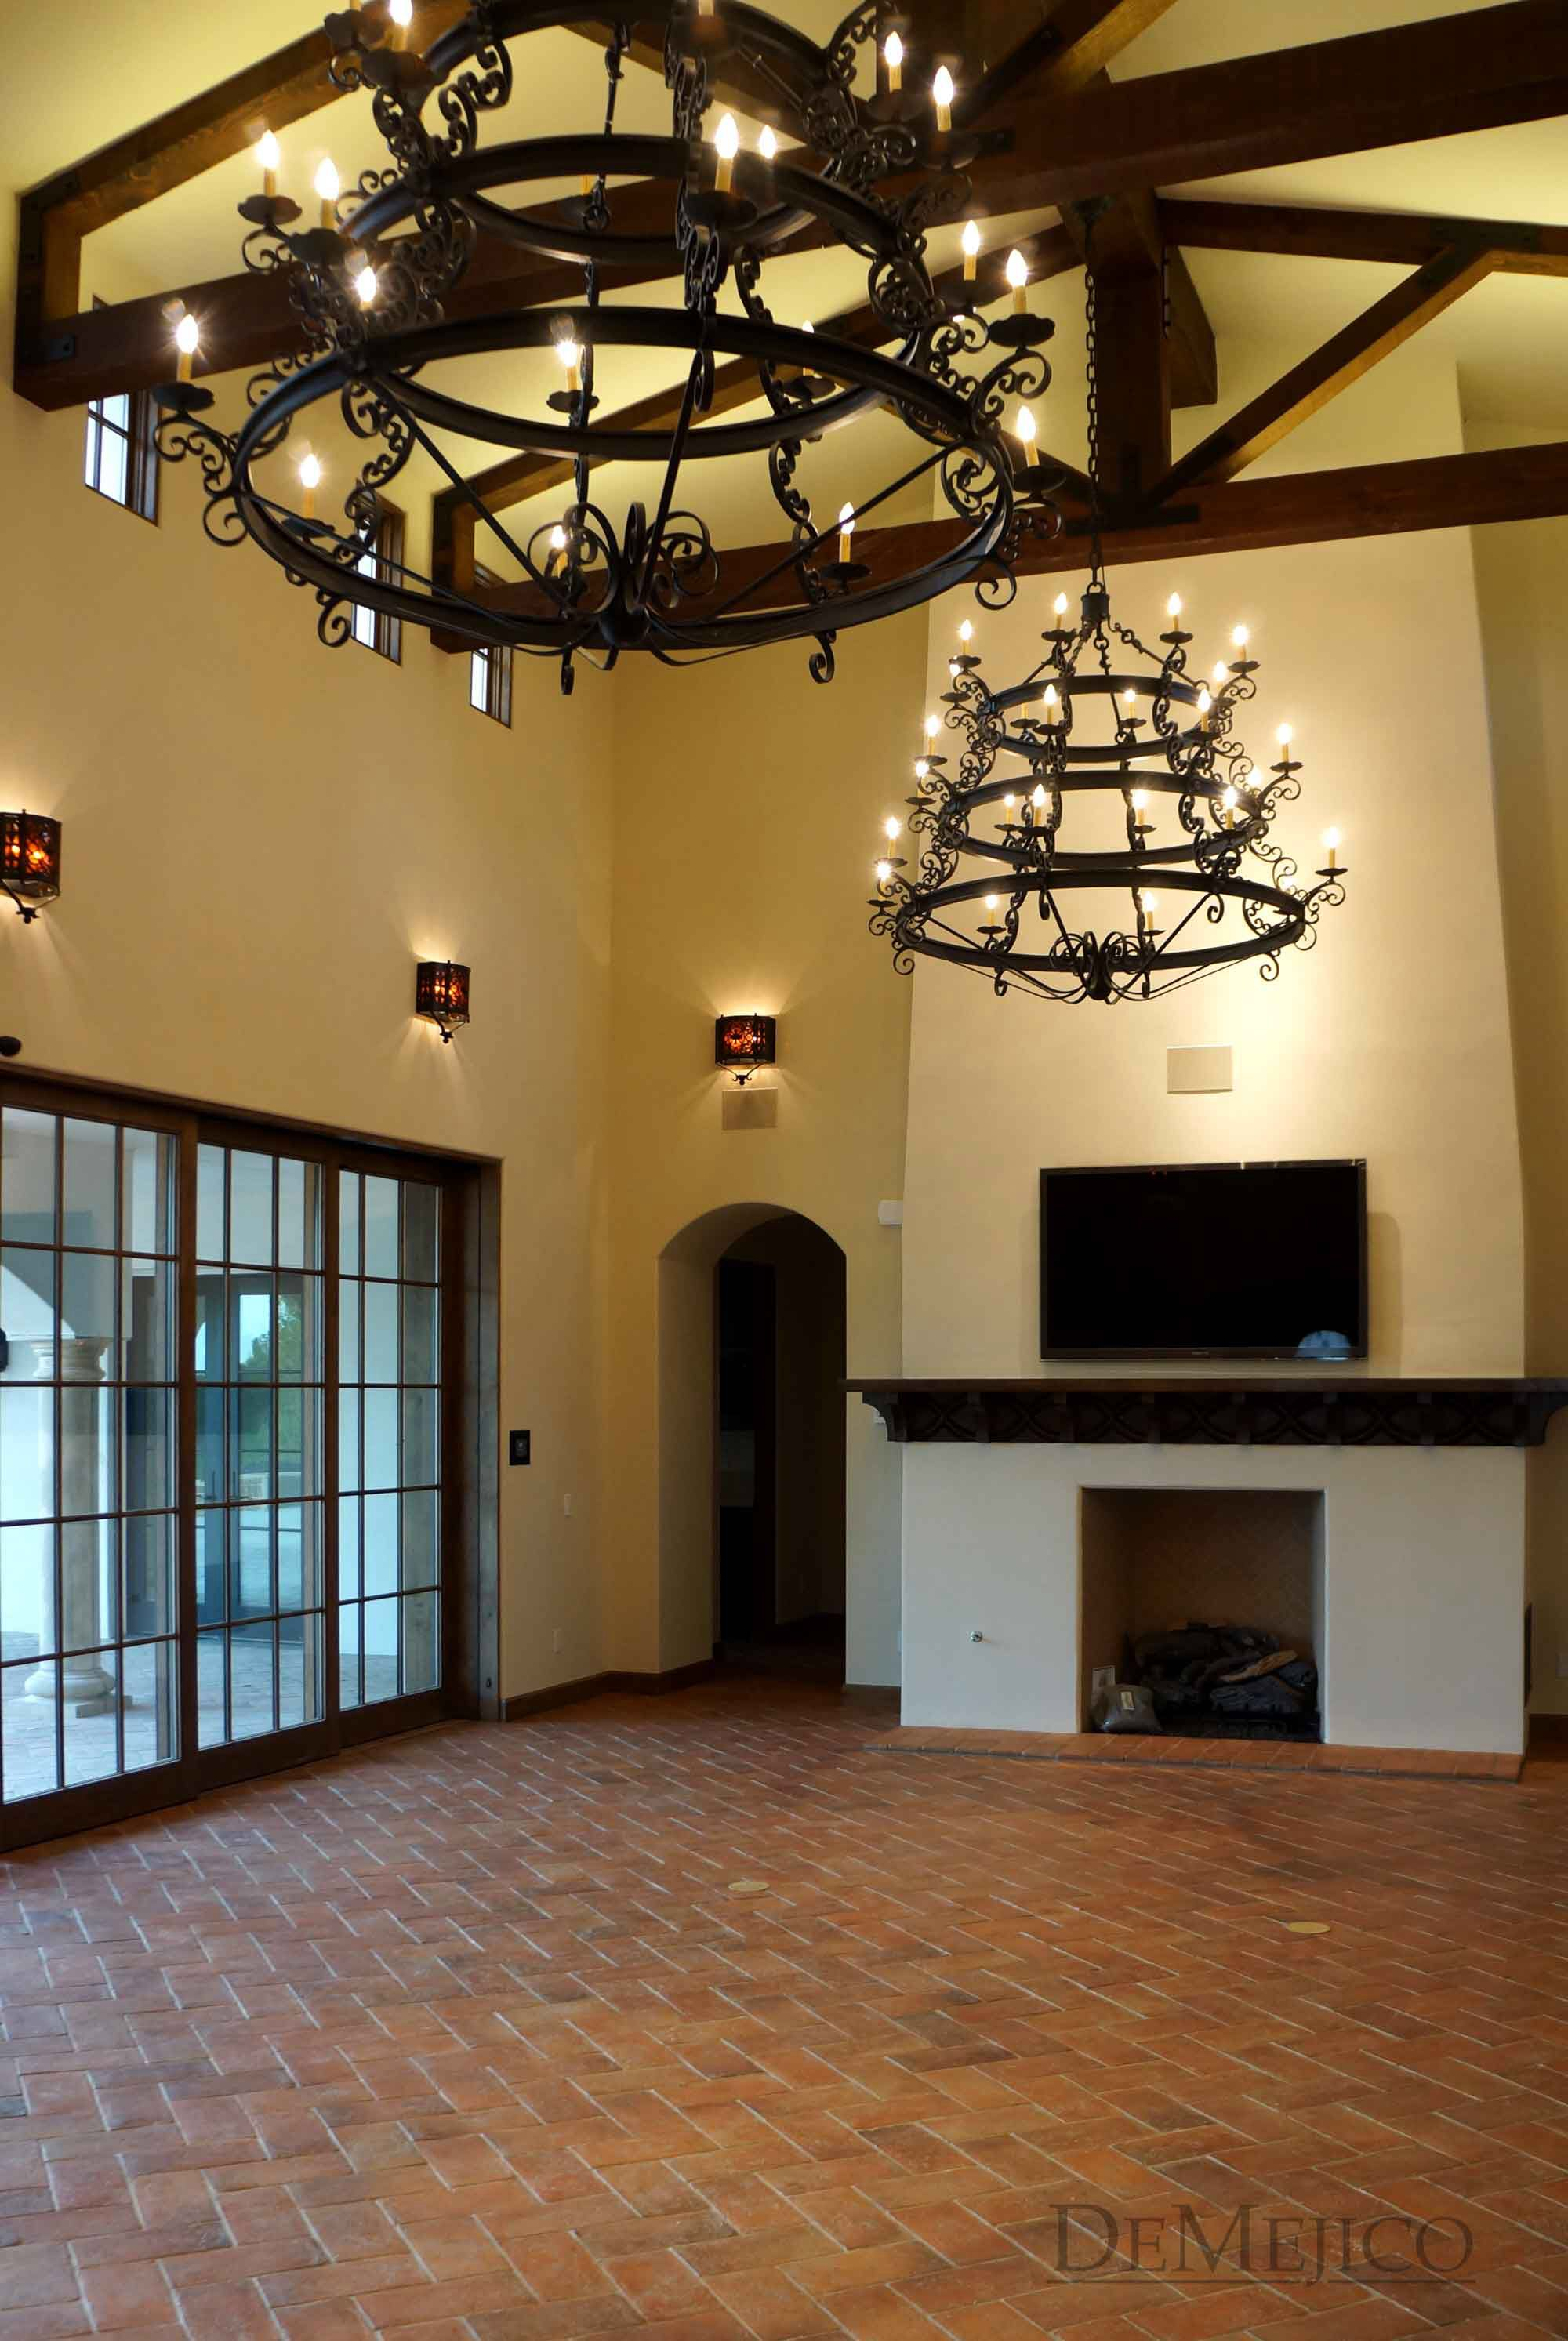 Spanish colonial Gothic Revival Chandeliers – Colonial Chandeliers Lighting